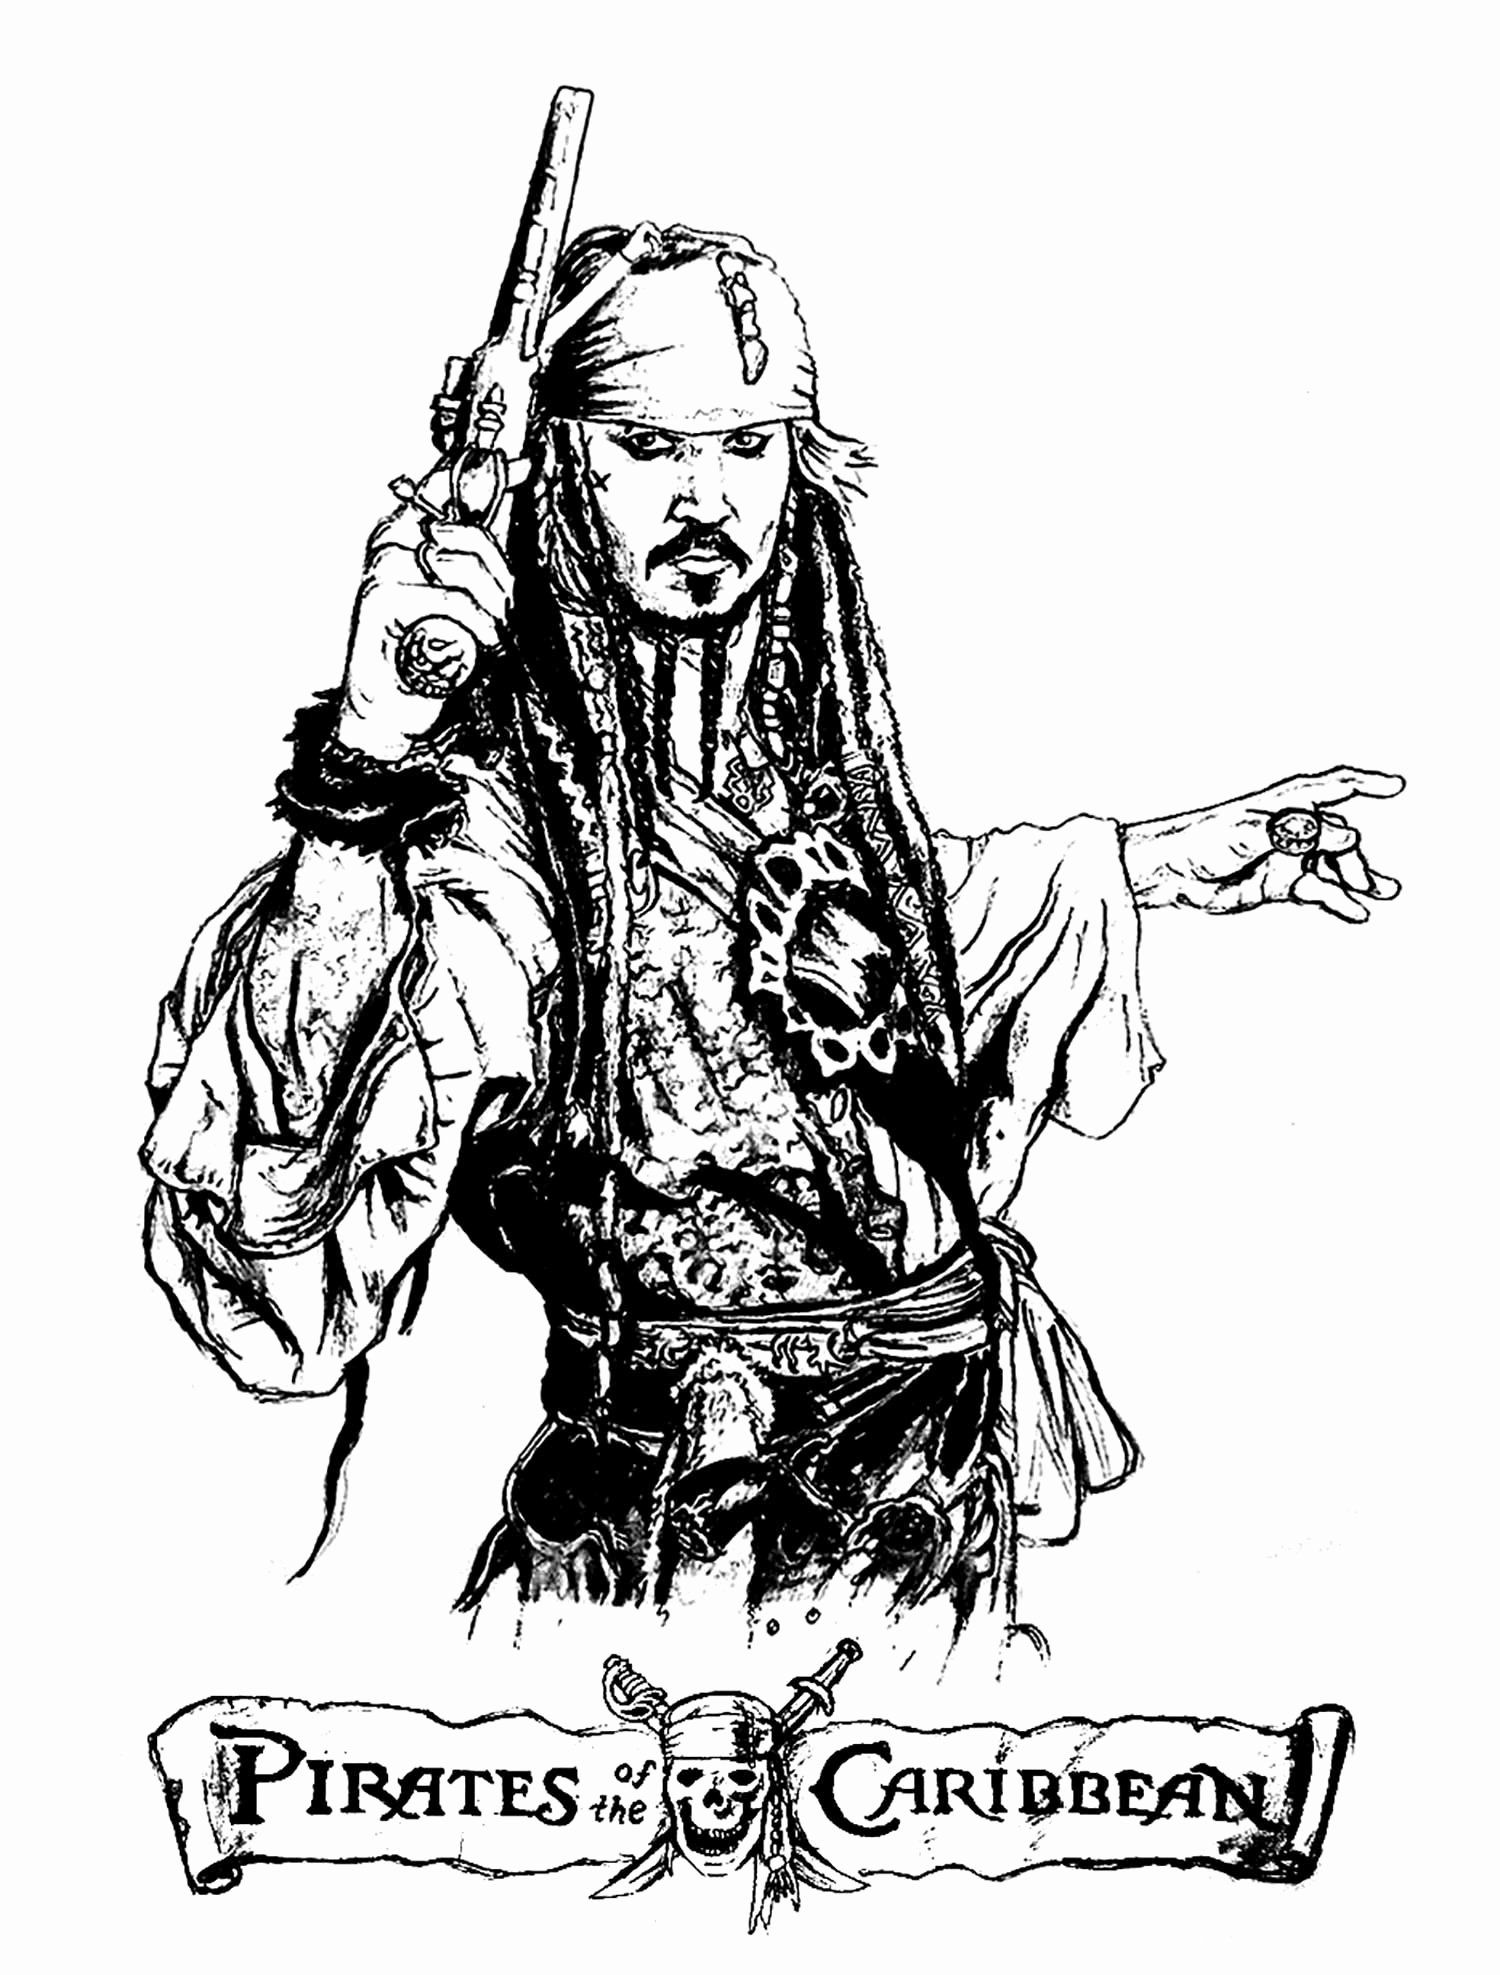 Pirates Of The Caribbean Coloring Page Luxury Caribbean Coloring Pages Pirates 2020 Coloring Pages Whale Coloring Pages Disney Coloring Pages